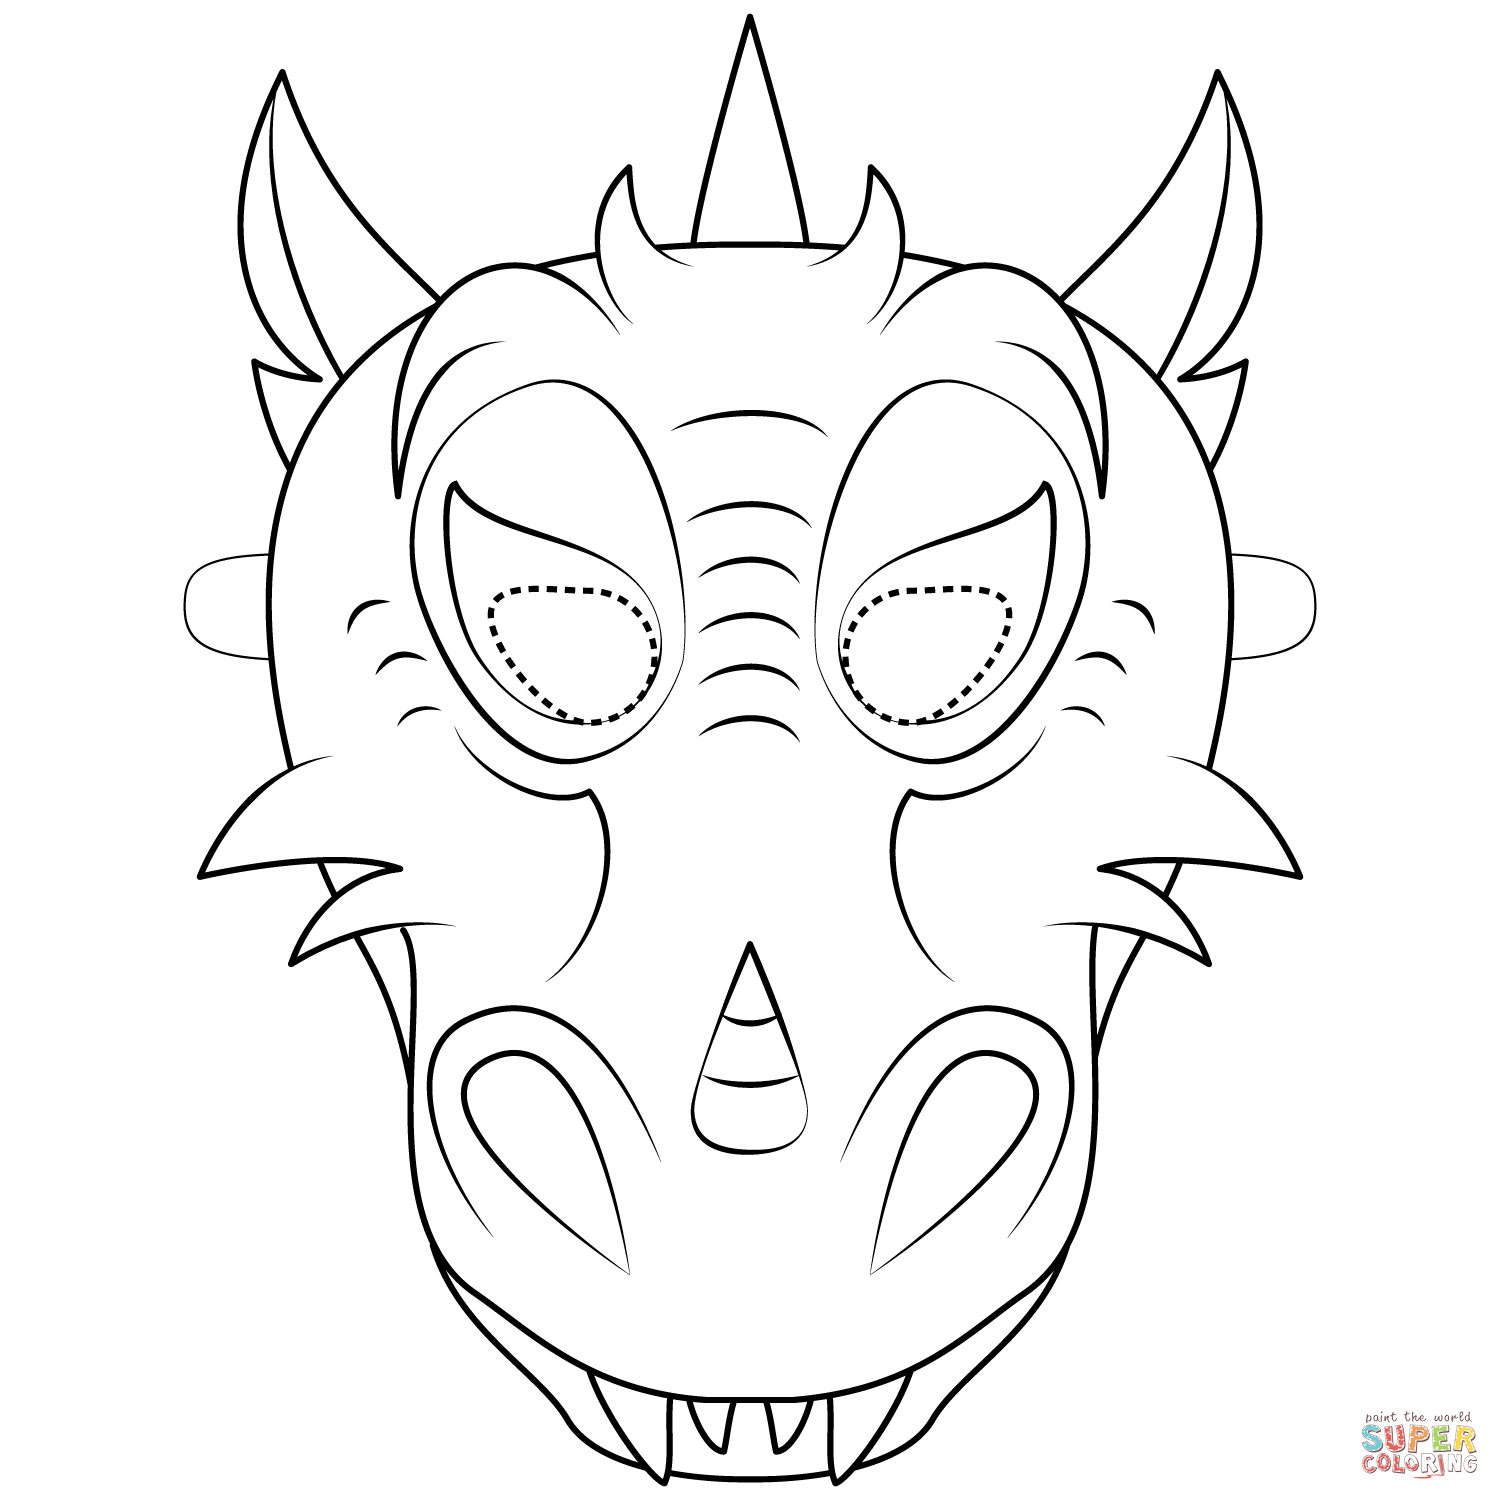 Dragon Mask Coloring Page | Free Printable Coloring Pages - Dragon Mask Printable Free